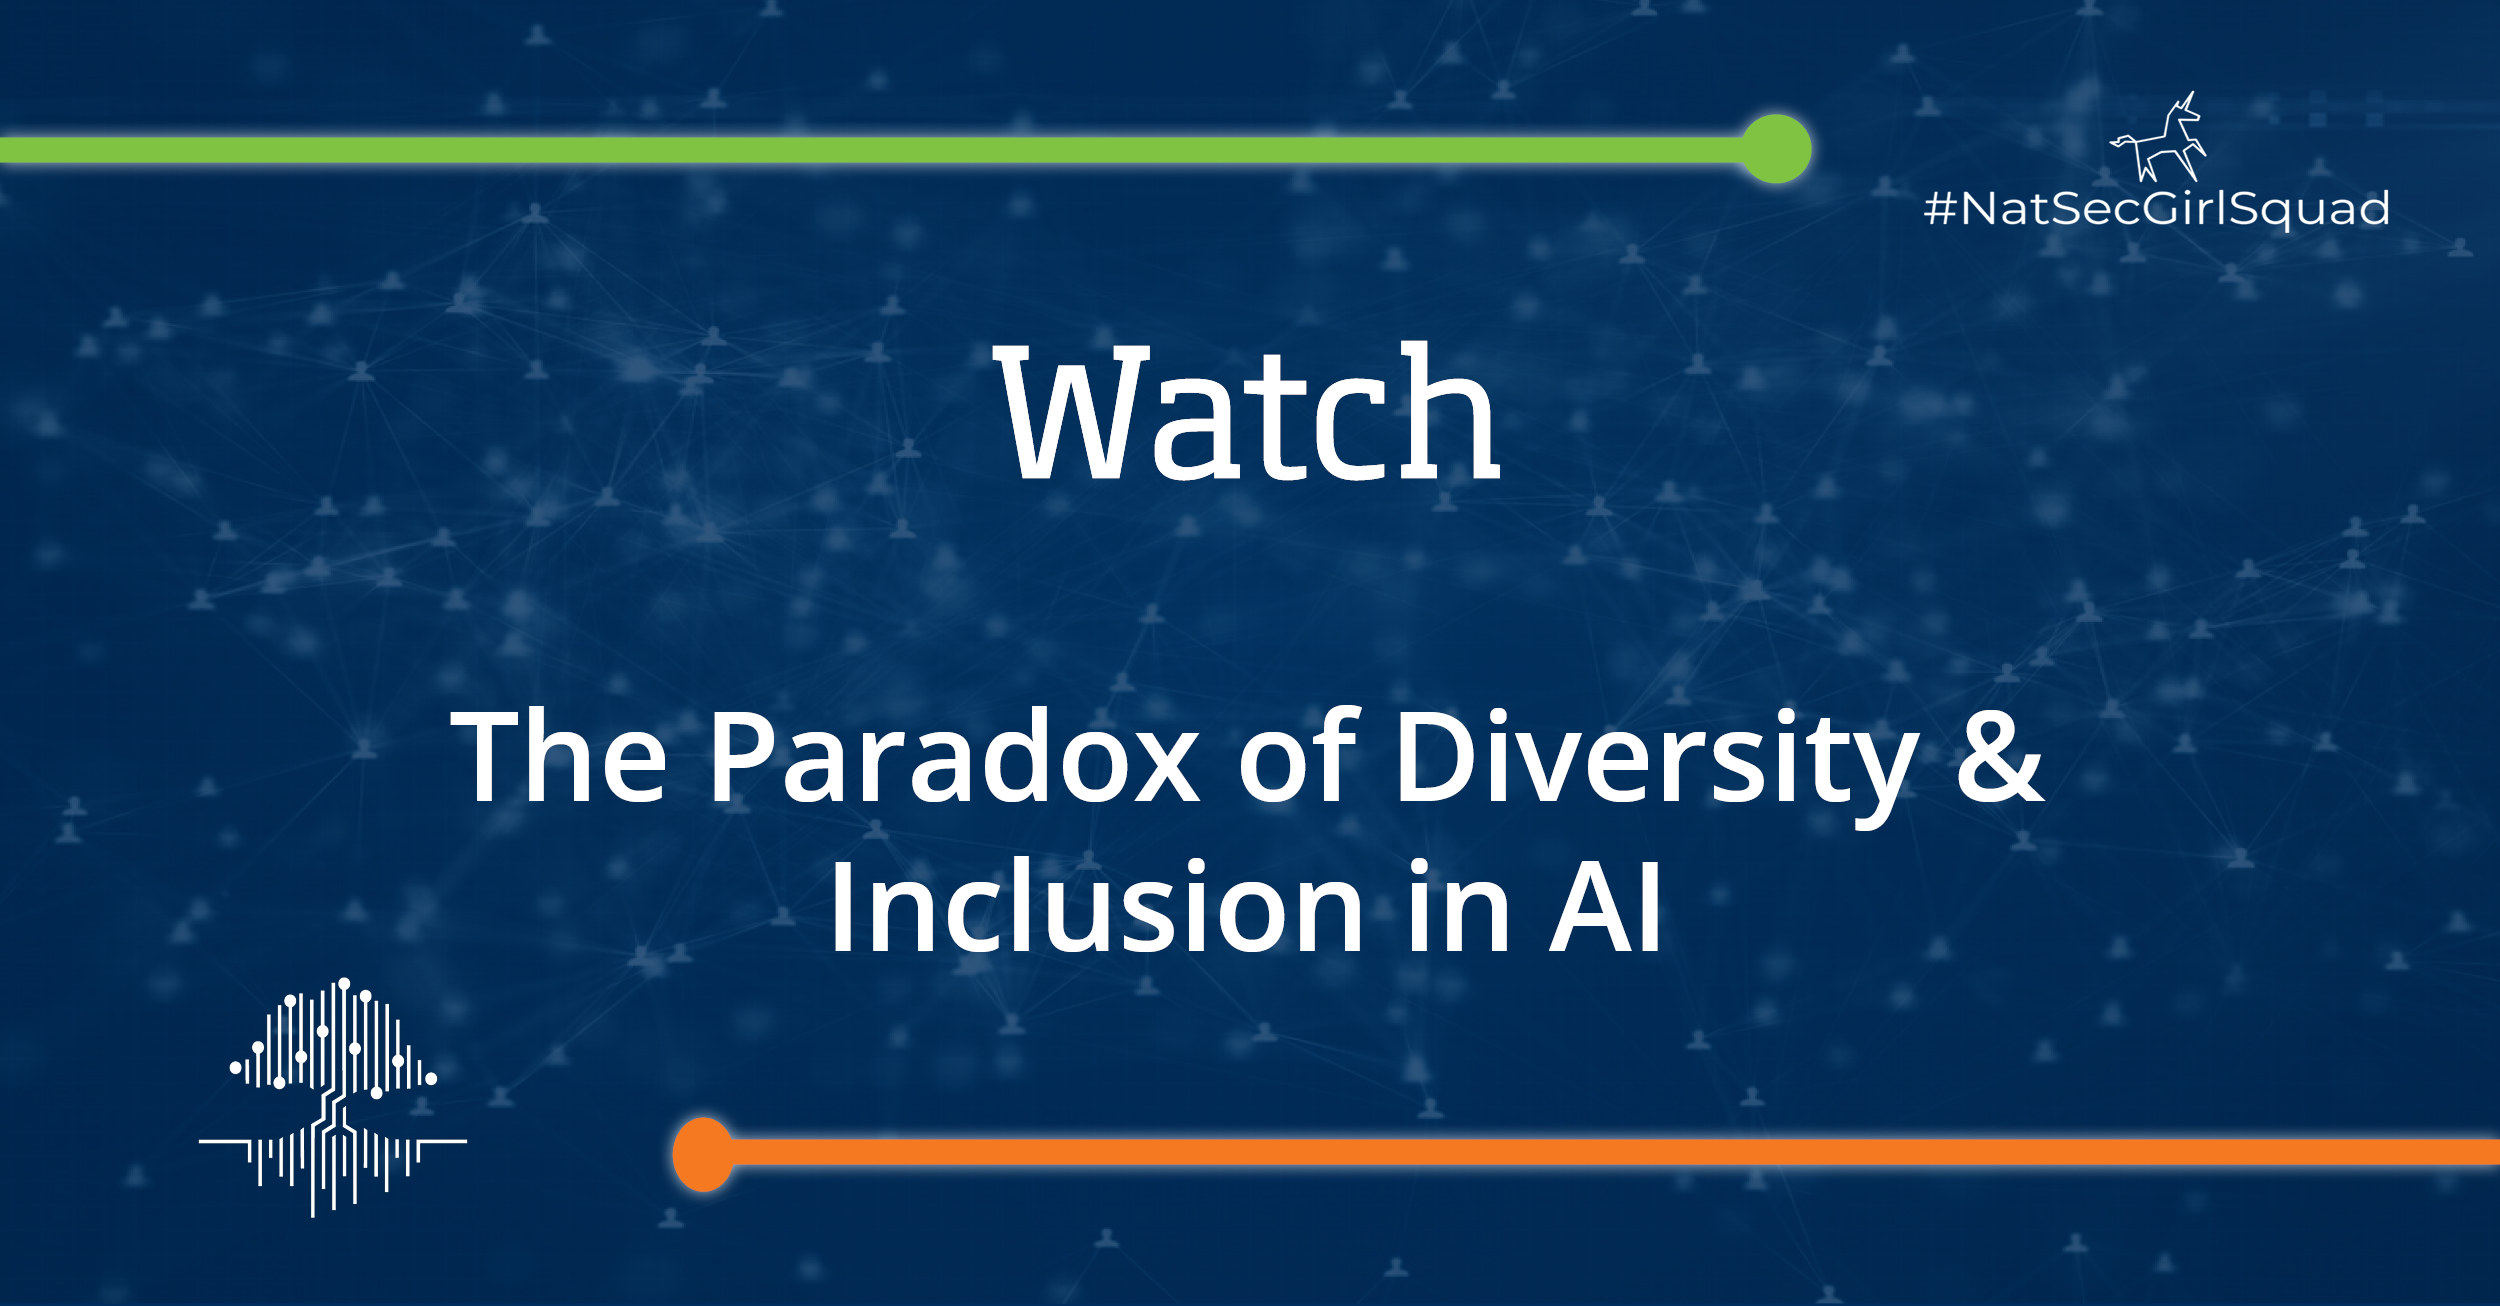 The Paradox of Diversity and Inclusion in AI-20200806 1905-2